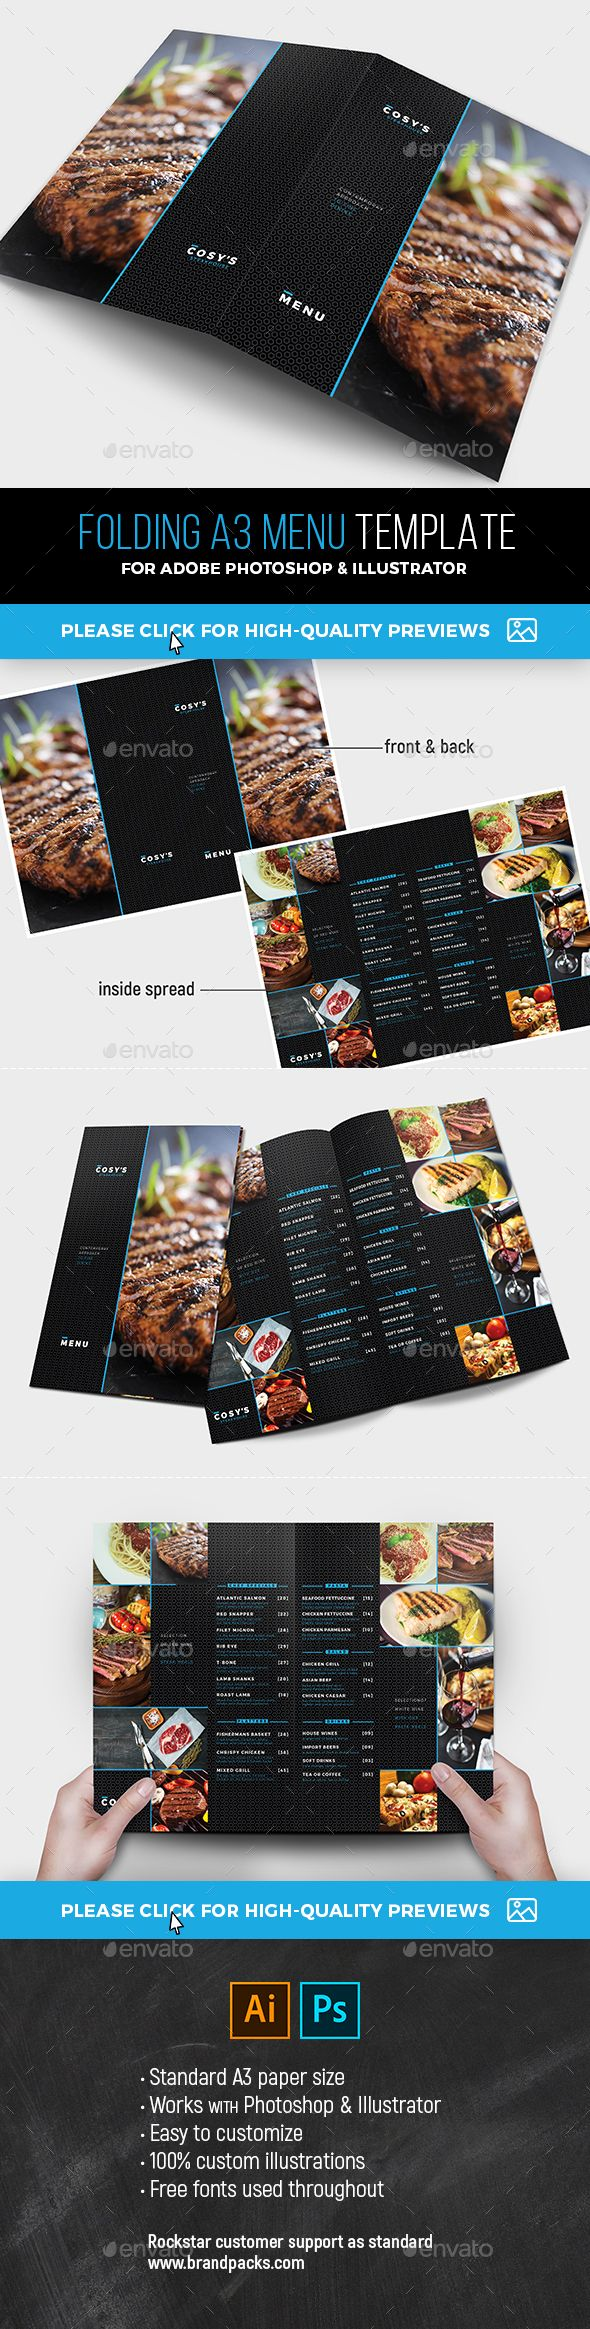 Folding A Menu Template Menu Templates Photoshop Illustrator And - Foldable menu template